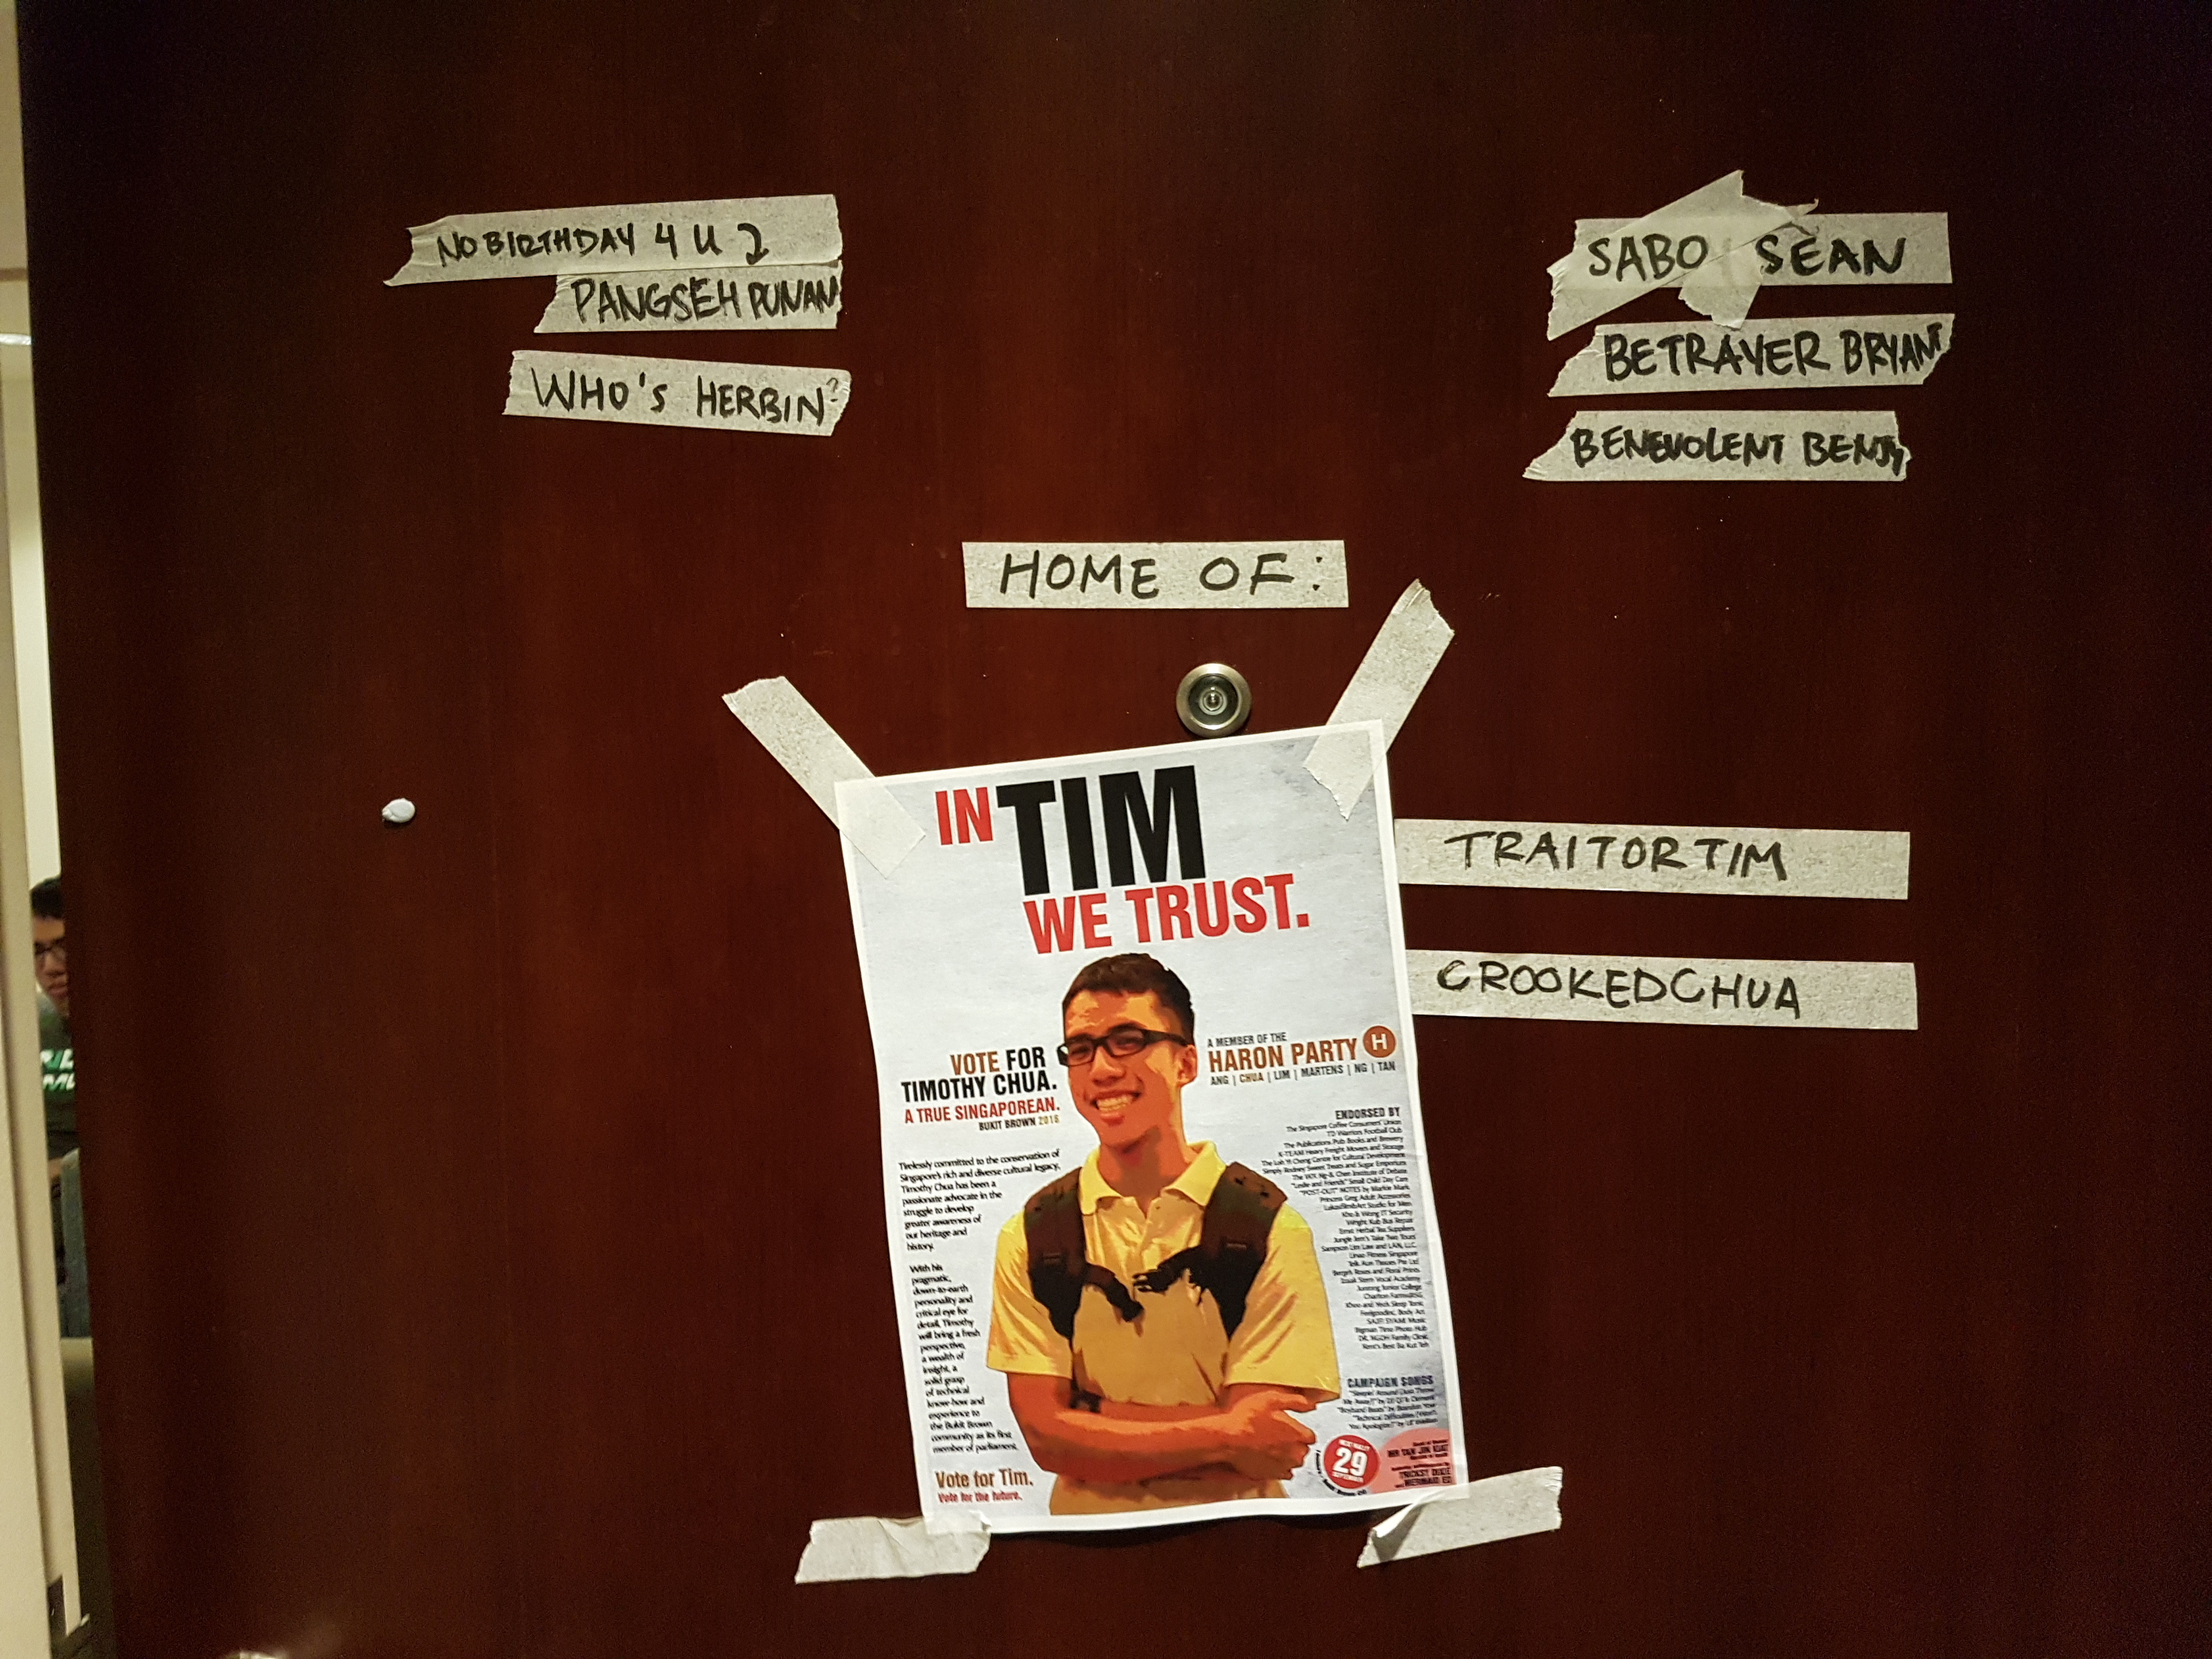 In Tim We Trust: 'With a good leader, anything is possible.'